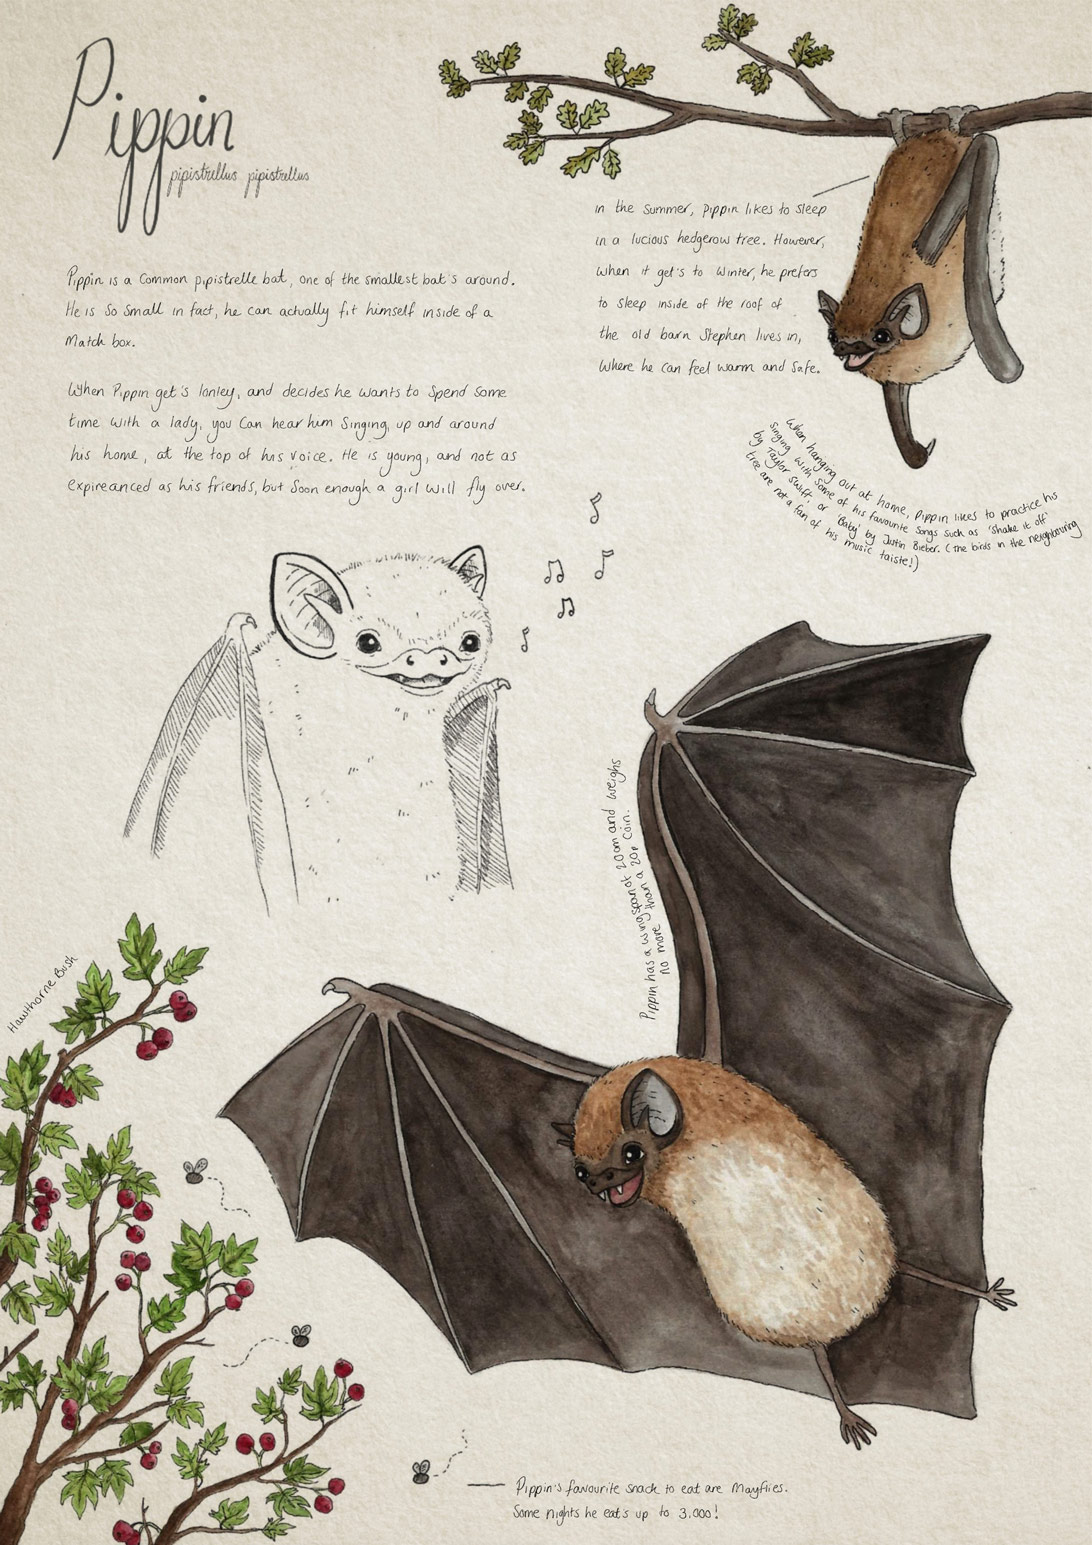 illustration and handwritten text information about the Pippin bat